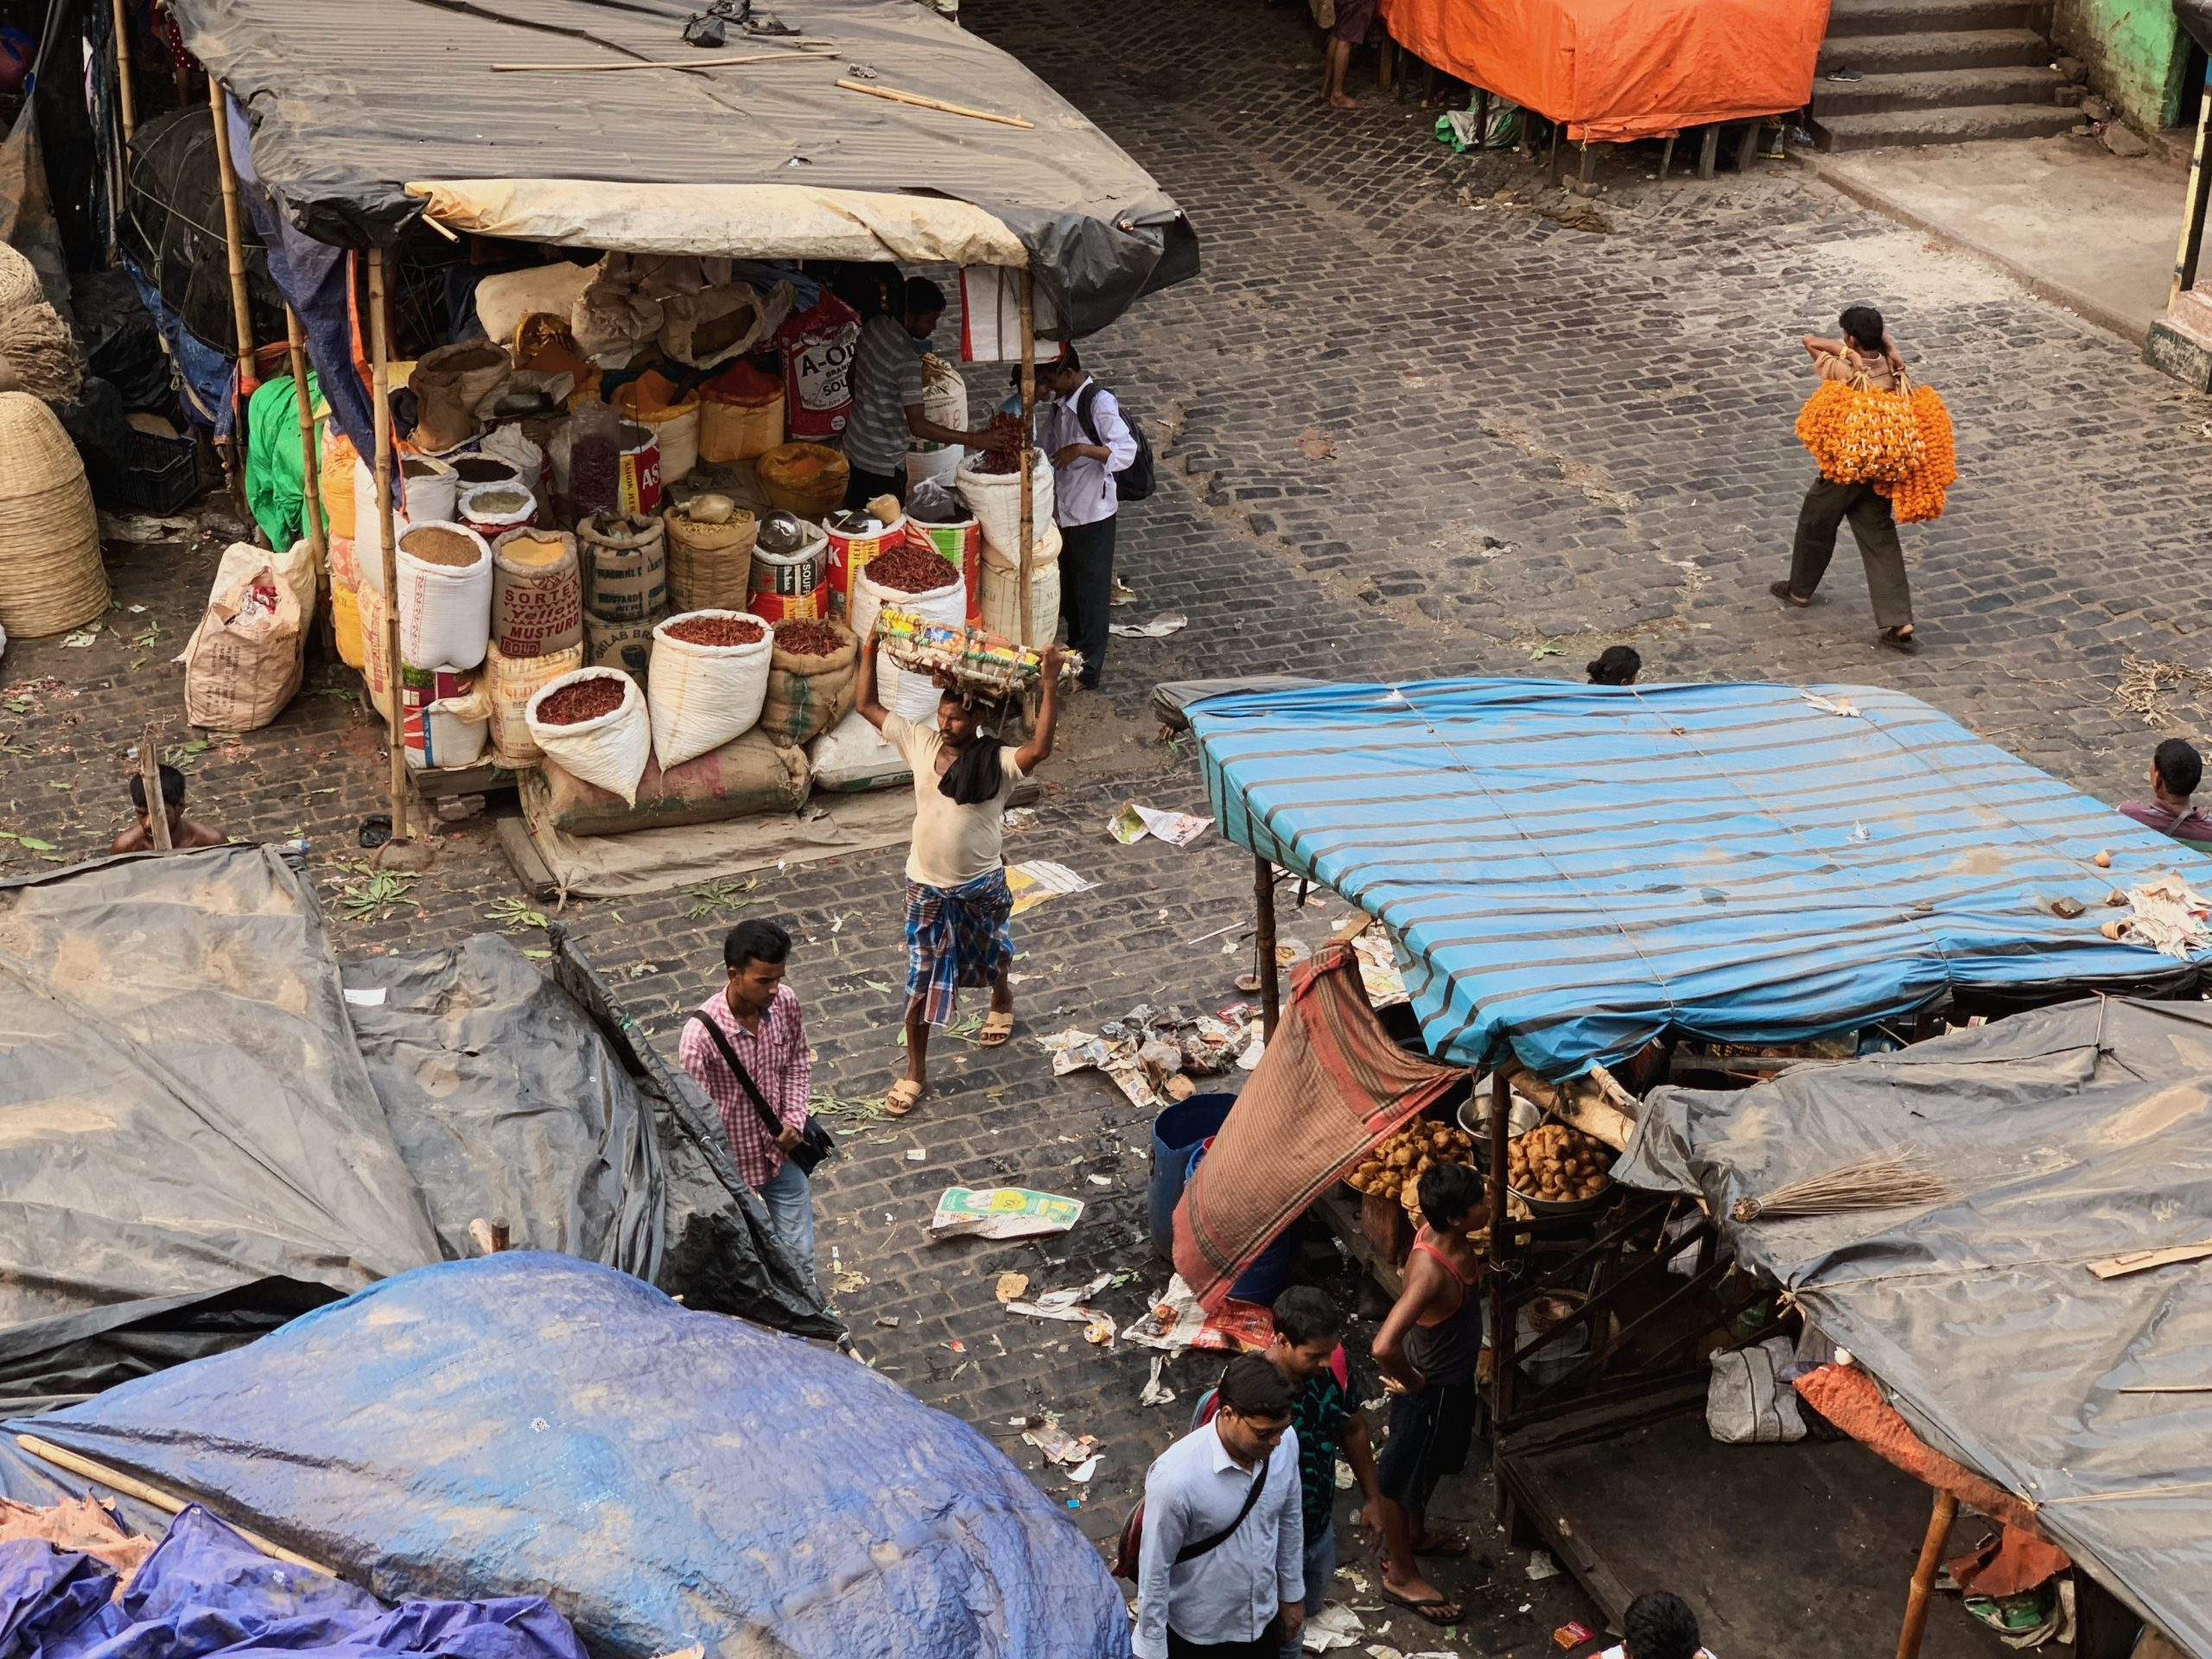 In The News: Statelessness In India